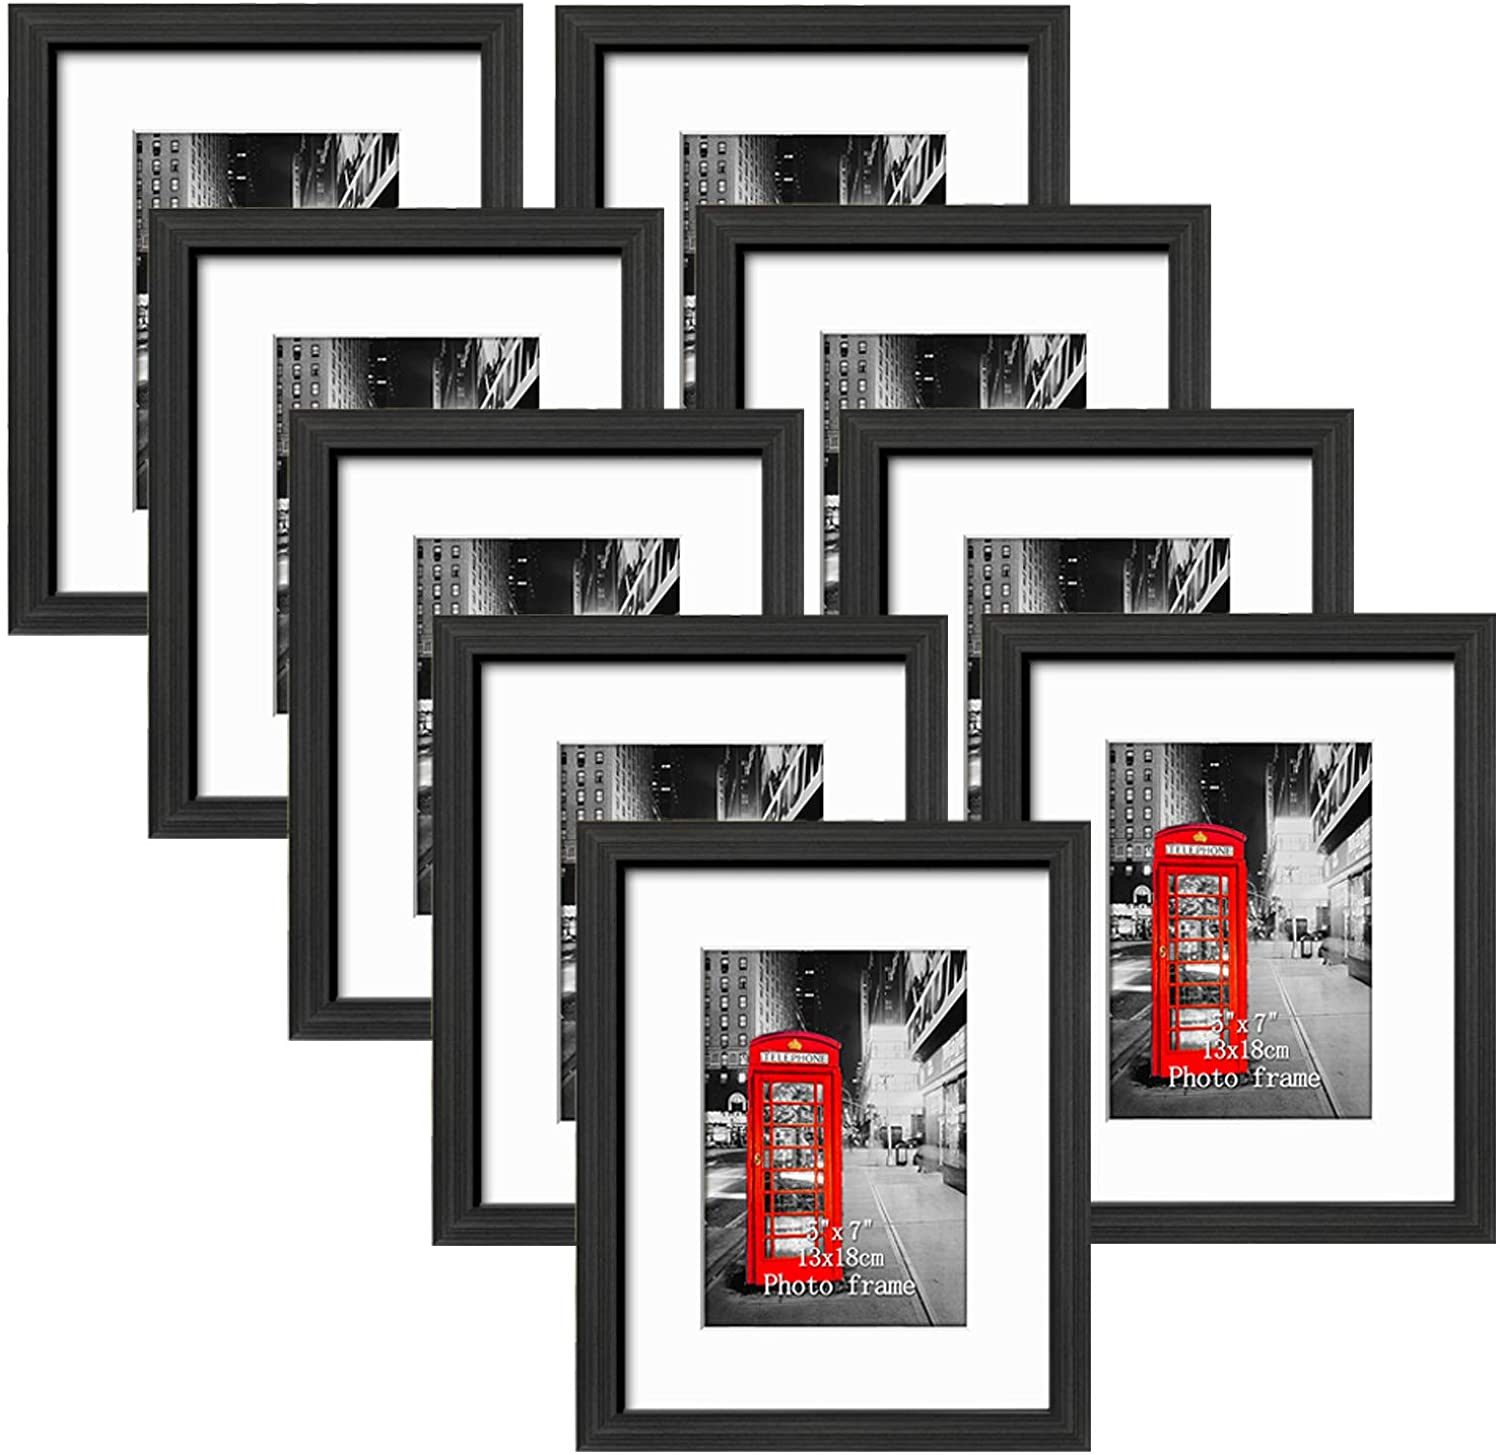 8x10 Picture Frame Set of 9, Made to Display Photos 5x7 with Mat or 8x10 Without Mat for Wall and Tabletop Black Frames